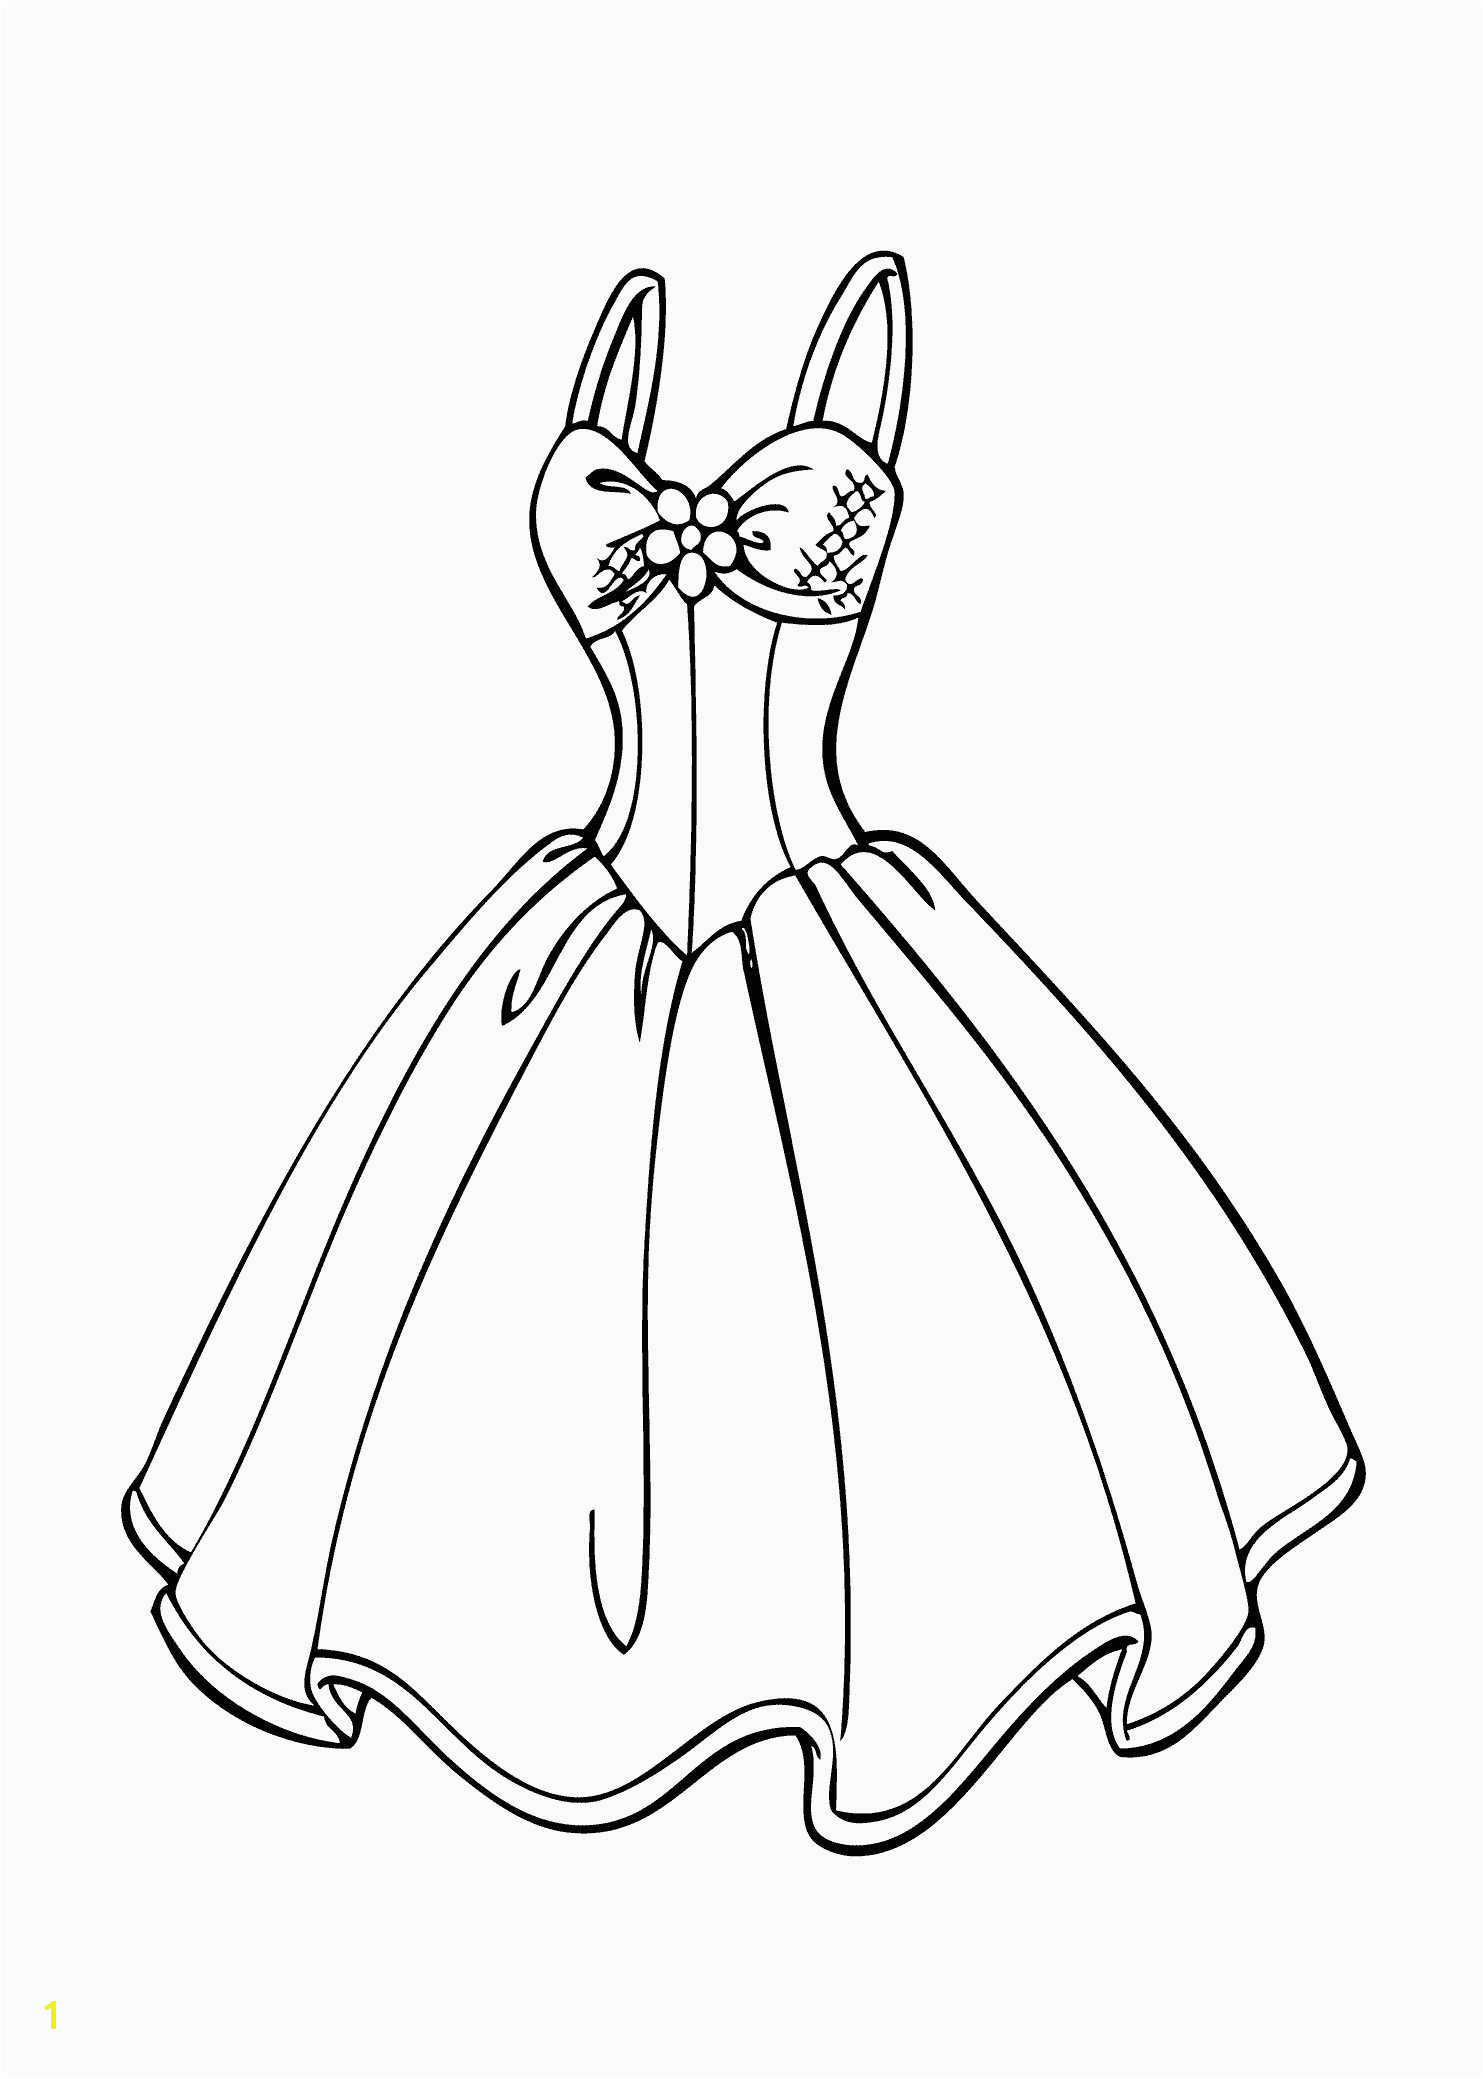 Dress Coloring Pages Beautiful Free Printable Spiderman Coloring Pages Unique 0 0d Dress Coloring Pages